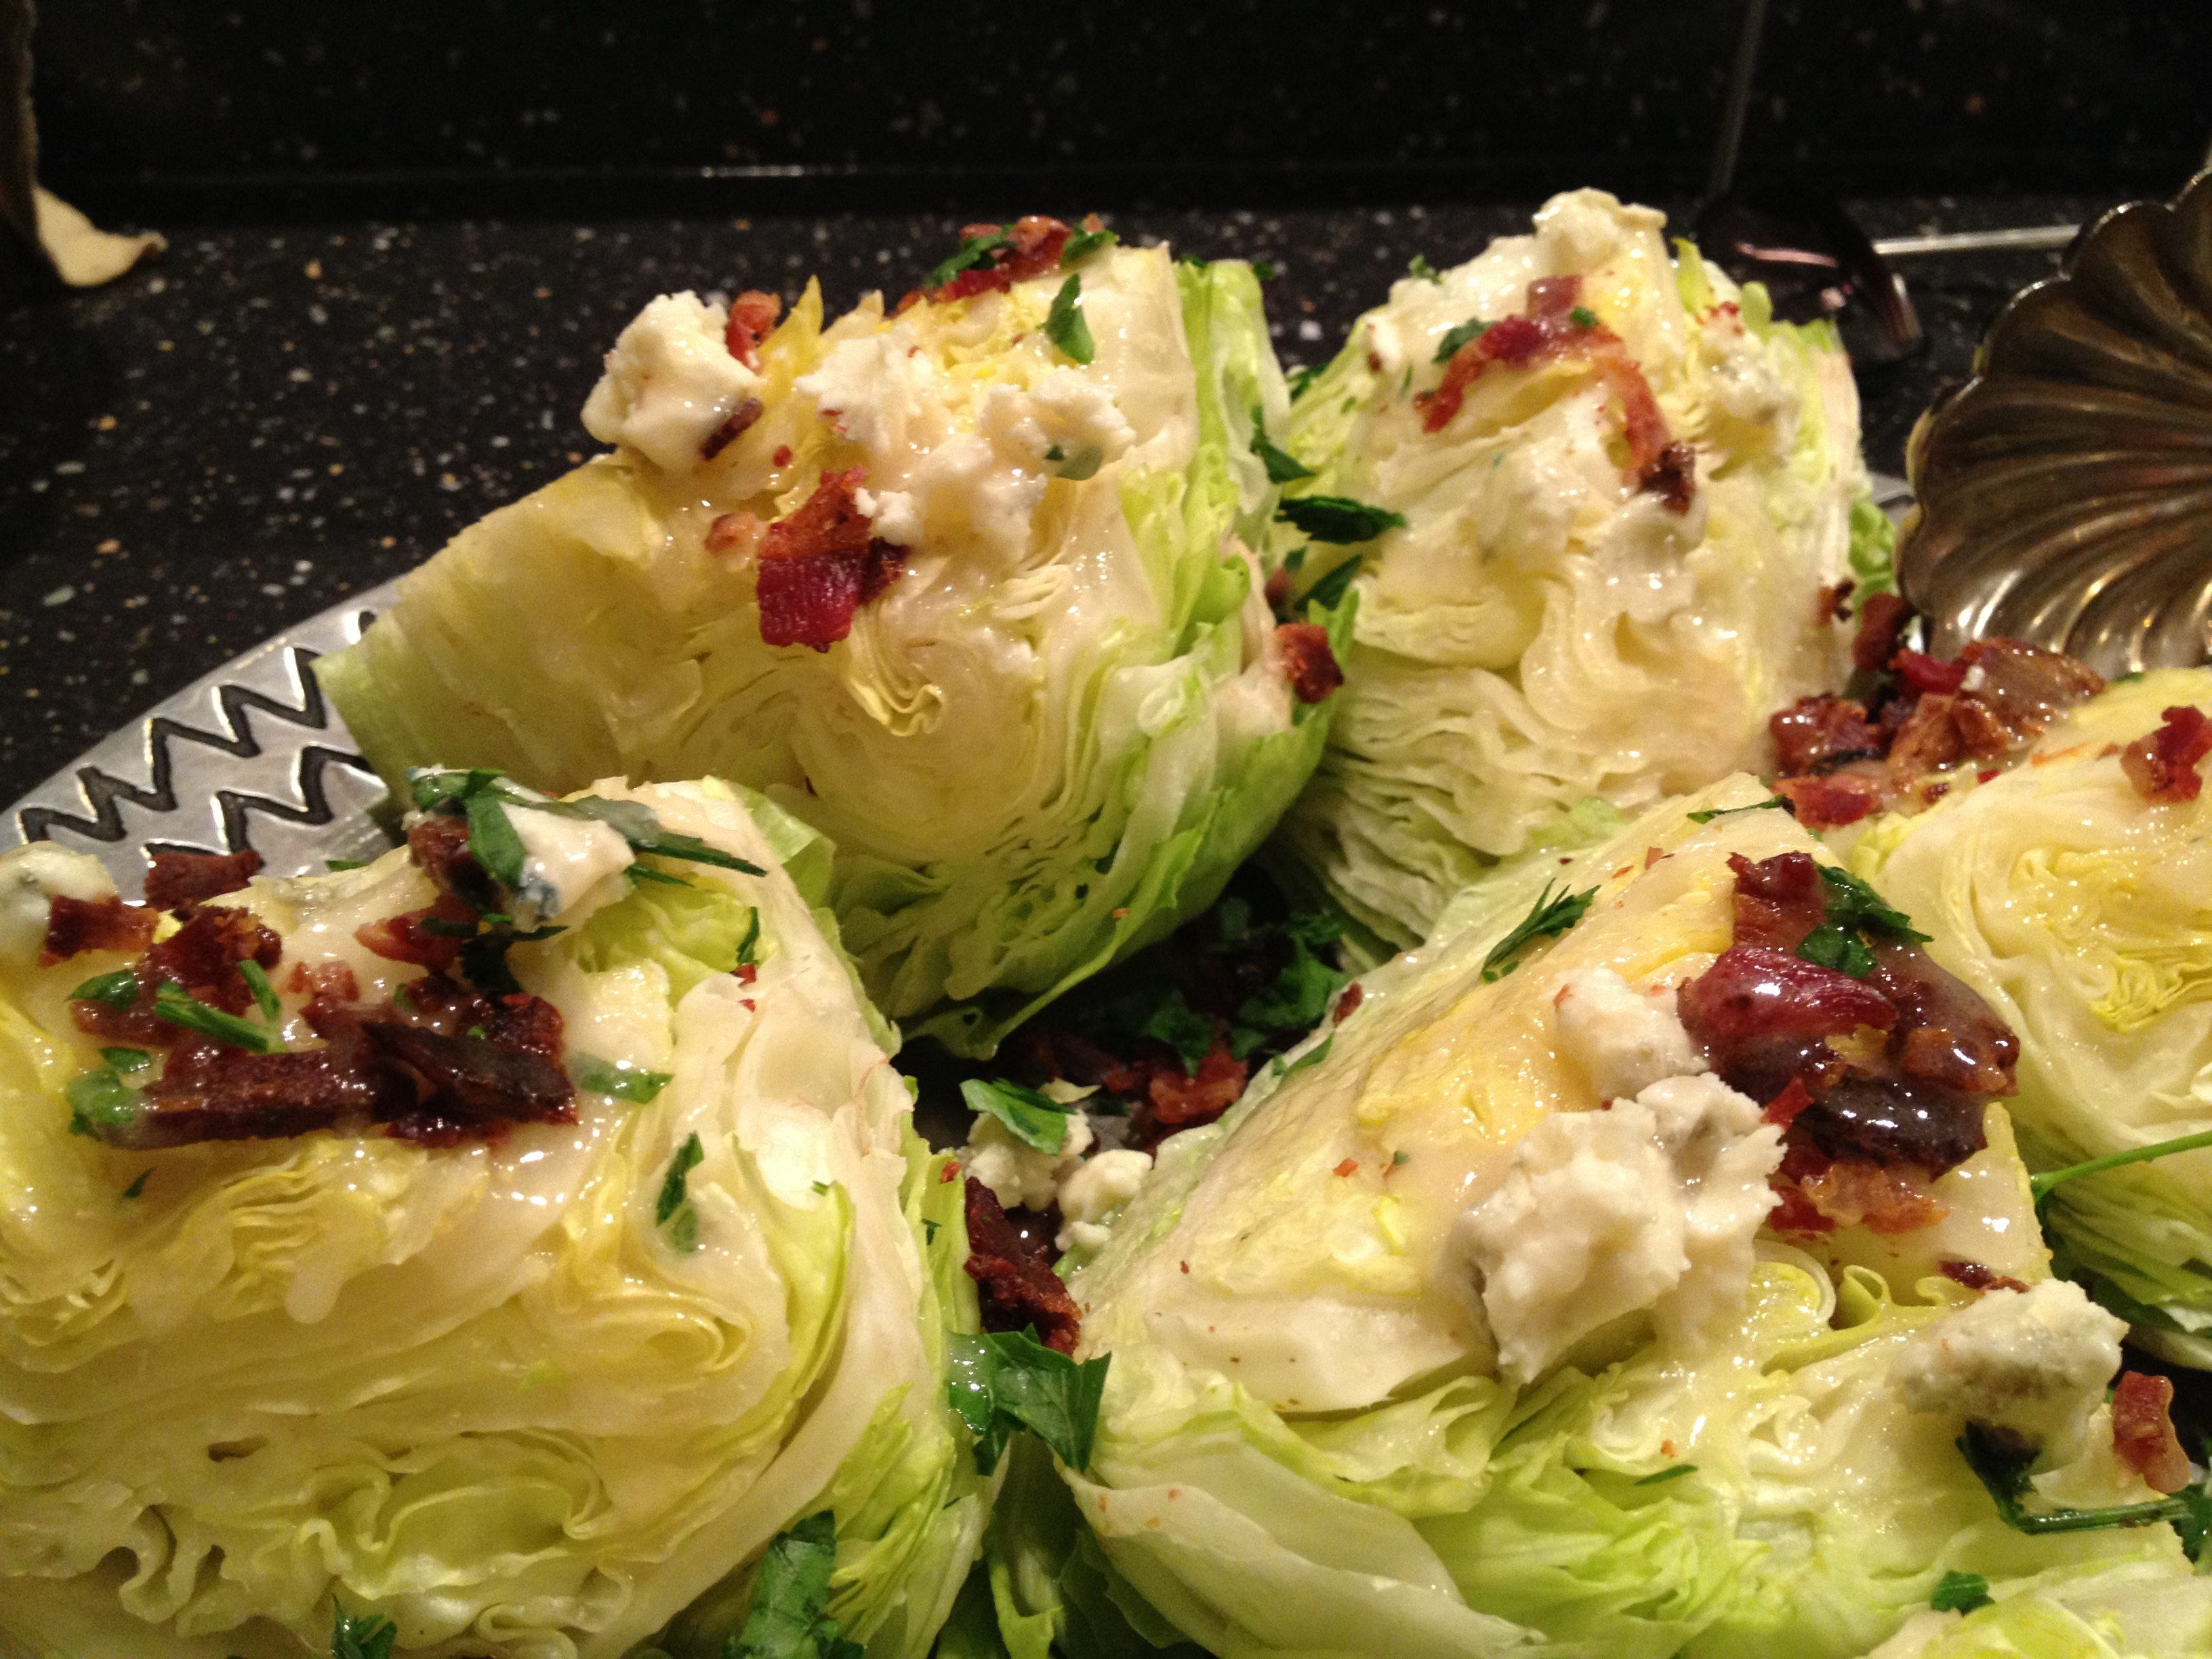 Iceberg Wedge Salad - CookingCoOp.com